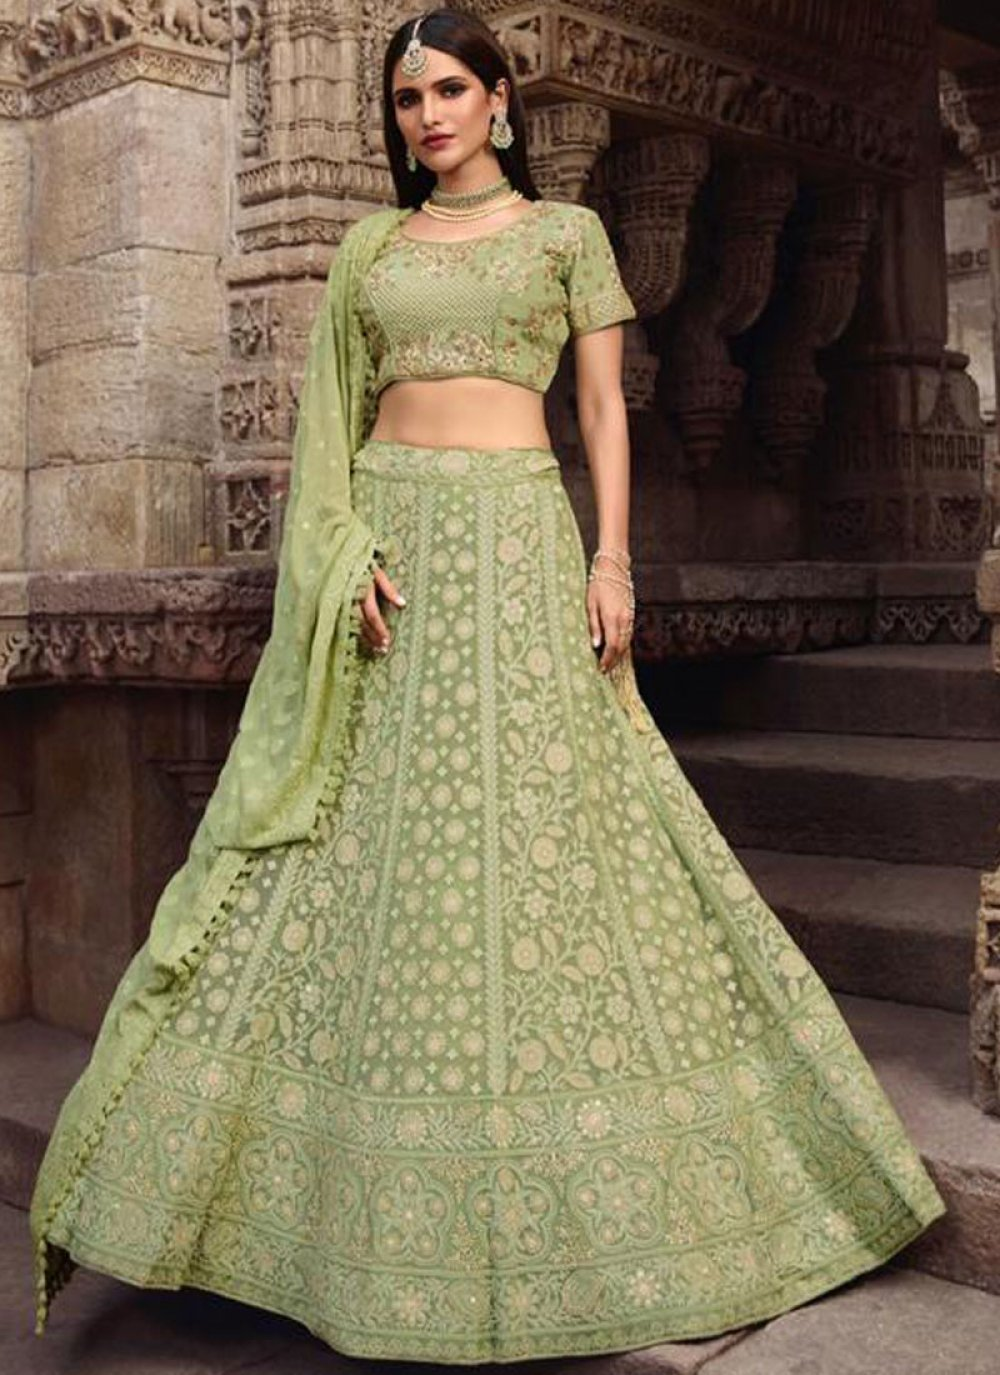 Lace Sea Green Lehenga Choli